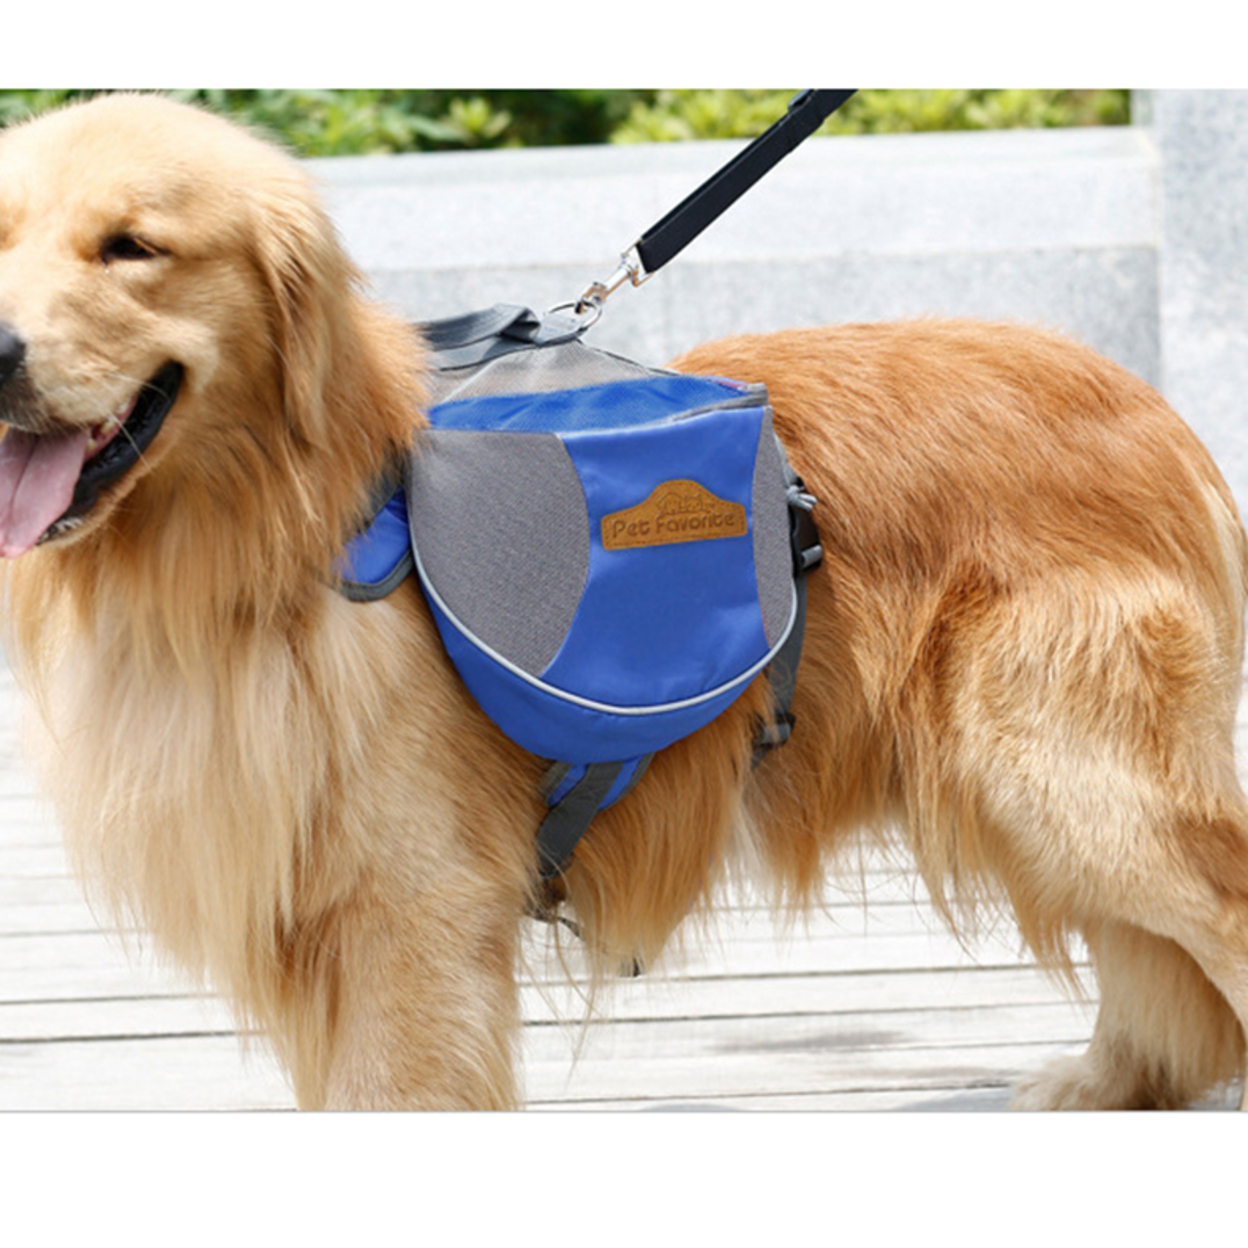 Jeerui Backpack for Dogs&Cats Multifunction Bag Backpack Travel Hiking Outdoors - l, blue 59c4be362a00e45950707520